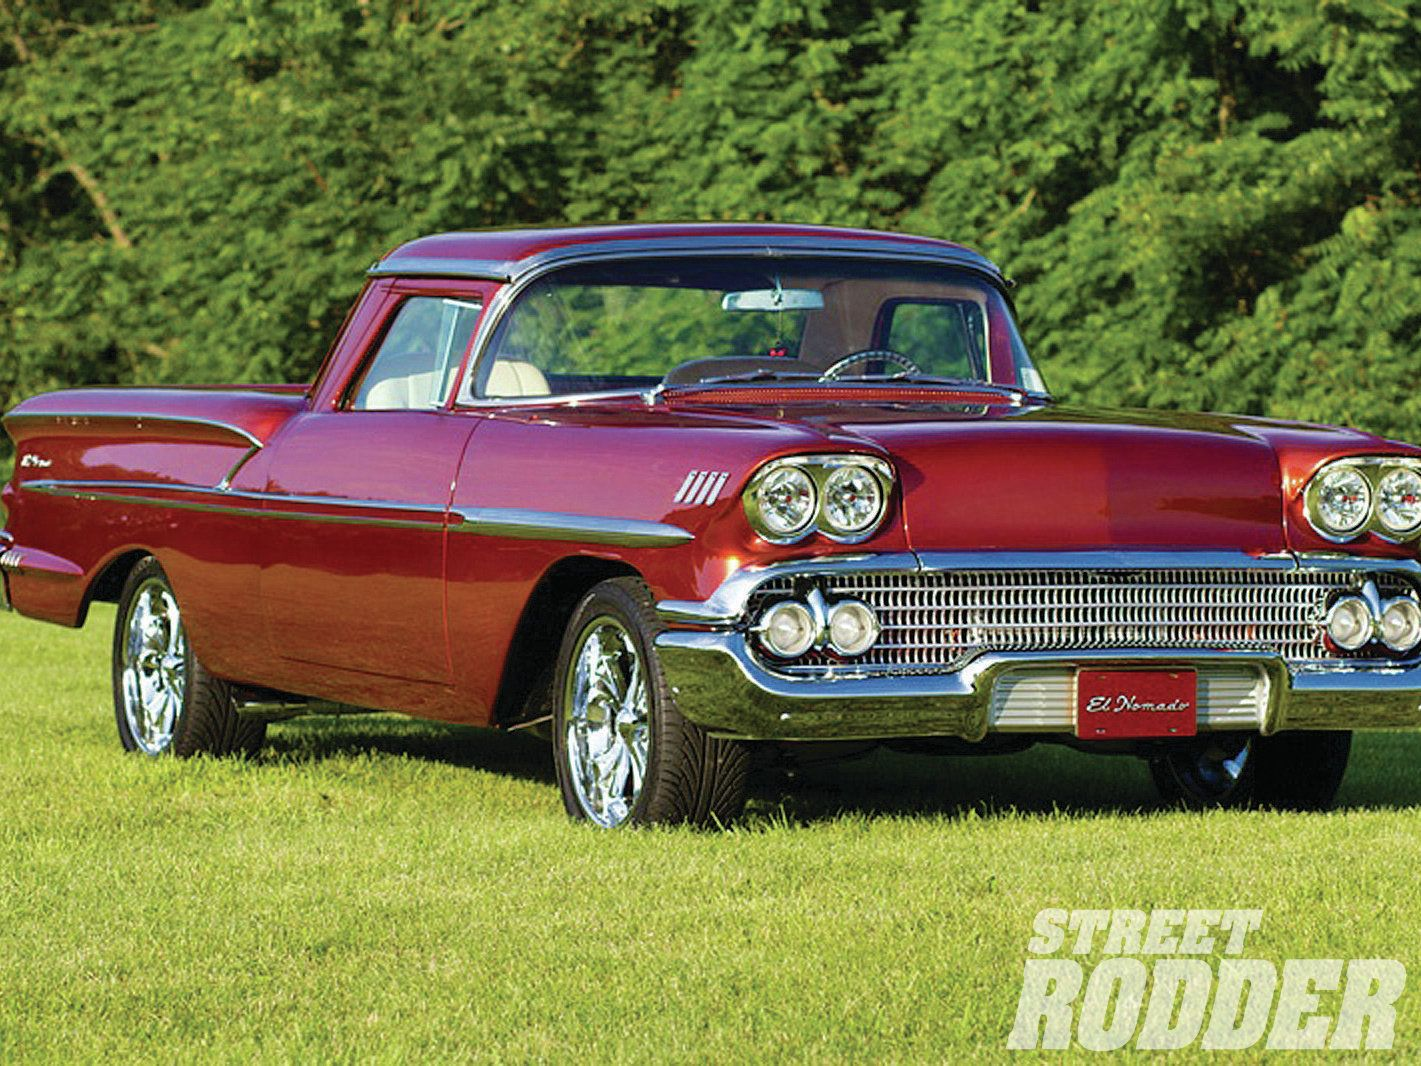 Chevy Never Made A 58 El Camino But If They Had Made This Car It